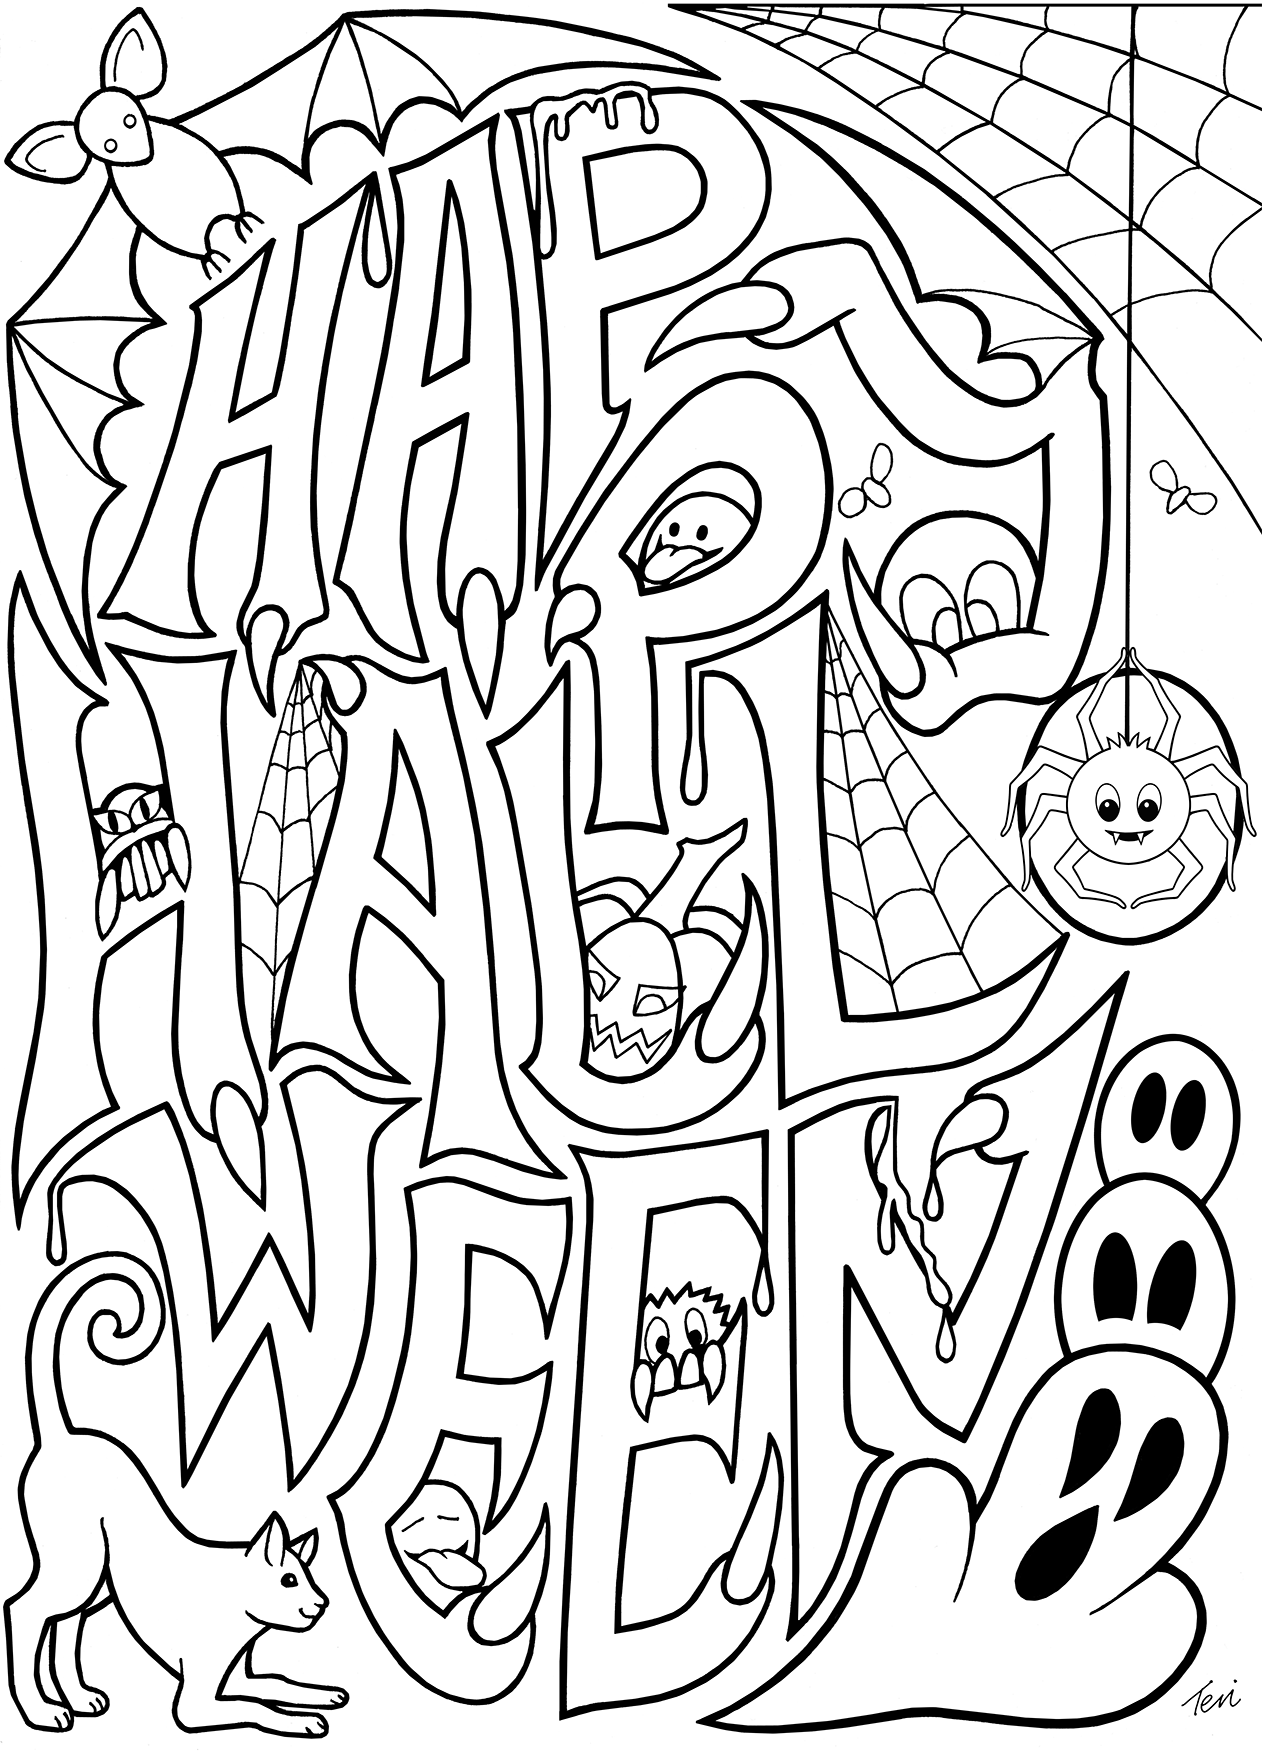 printable coloring pages halloween | Free Adult Coloring Book Pages #Happy #Halloween by Blue ...